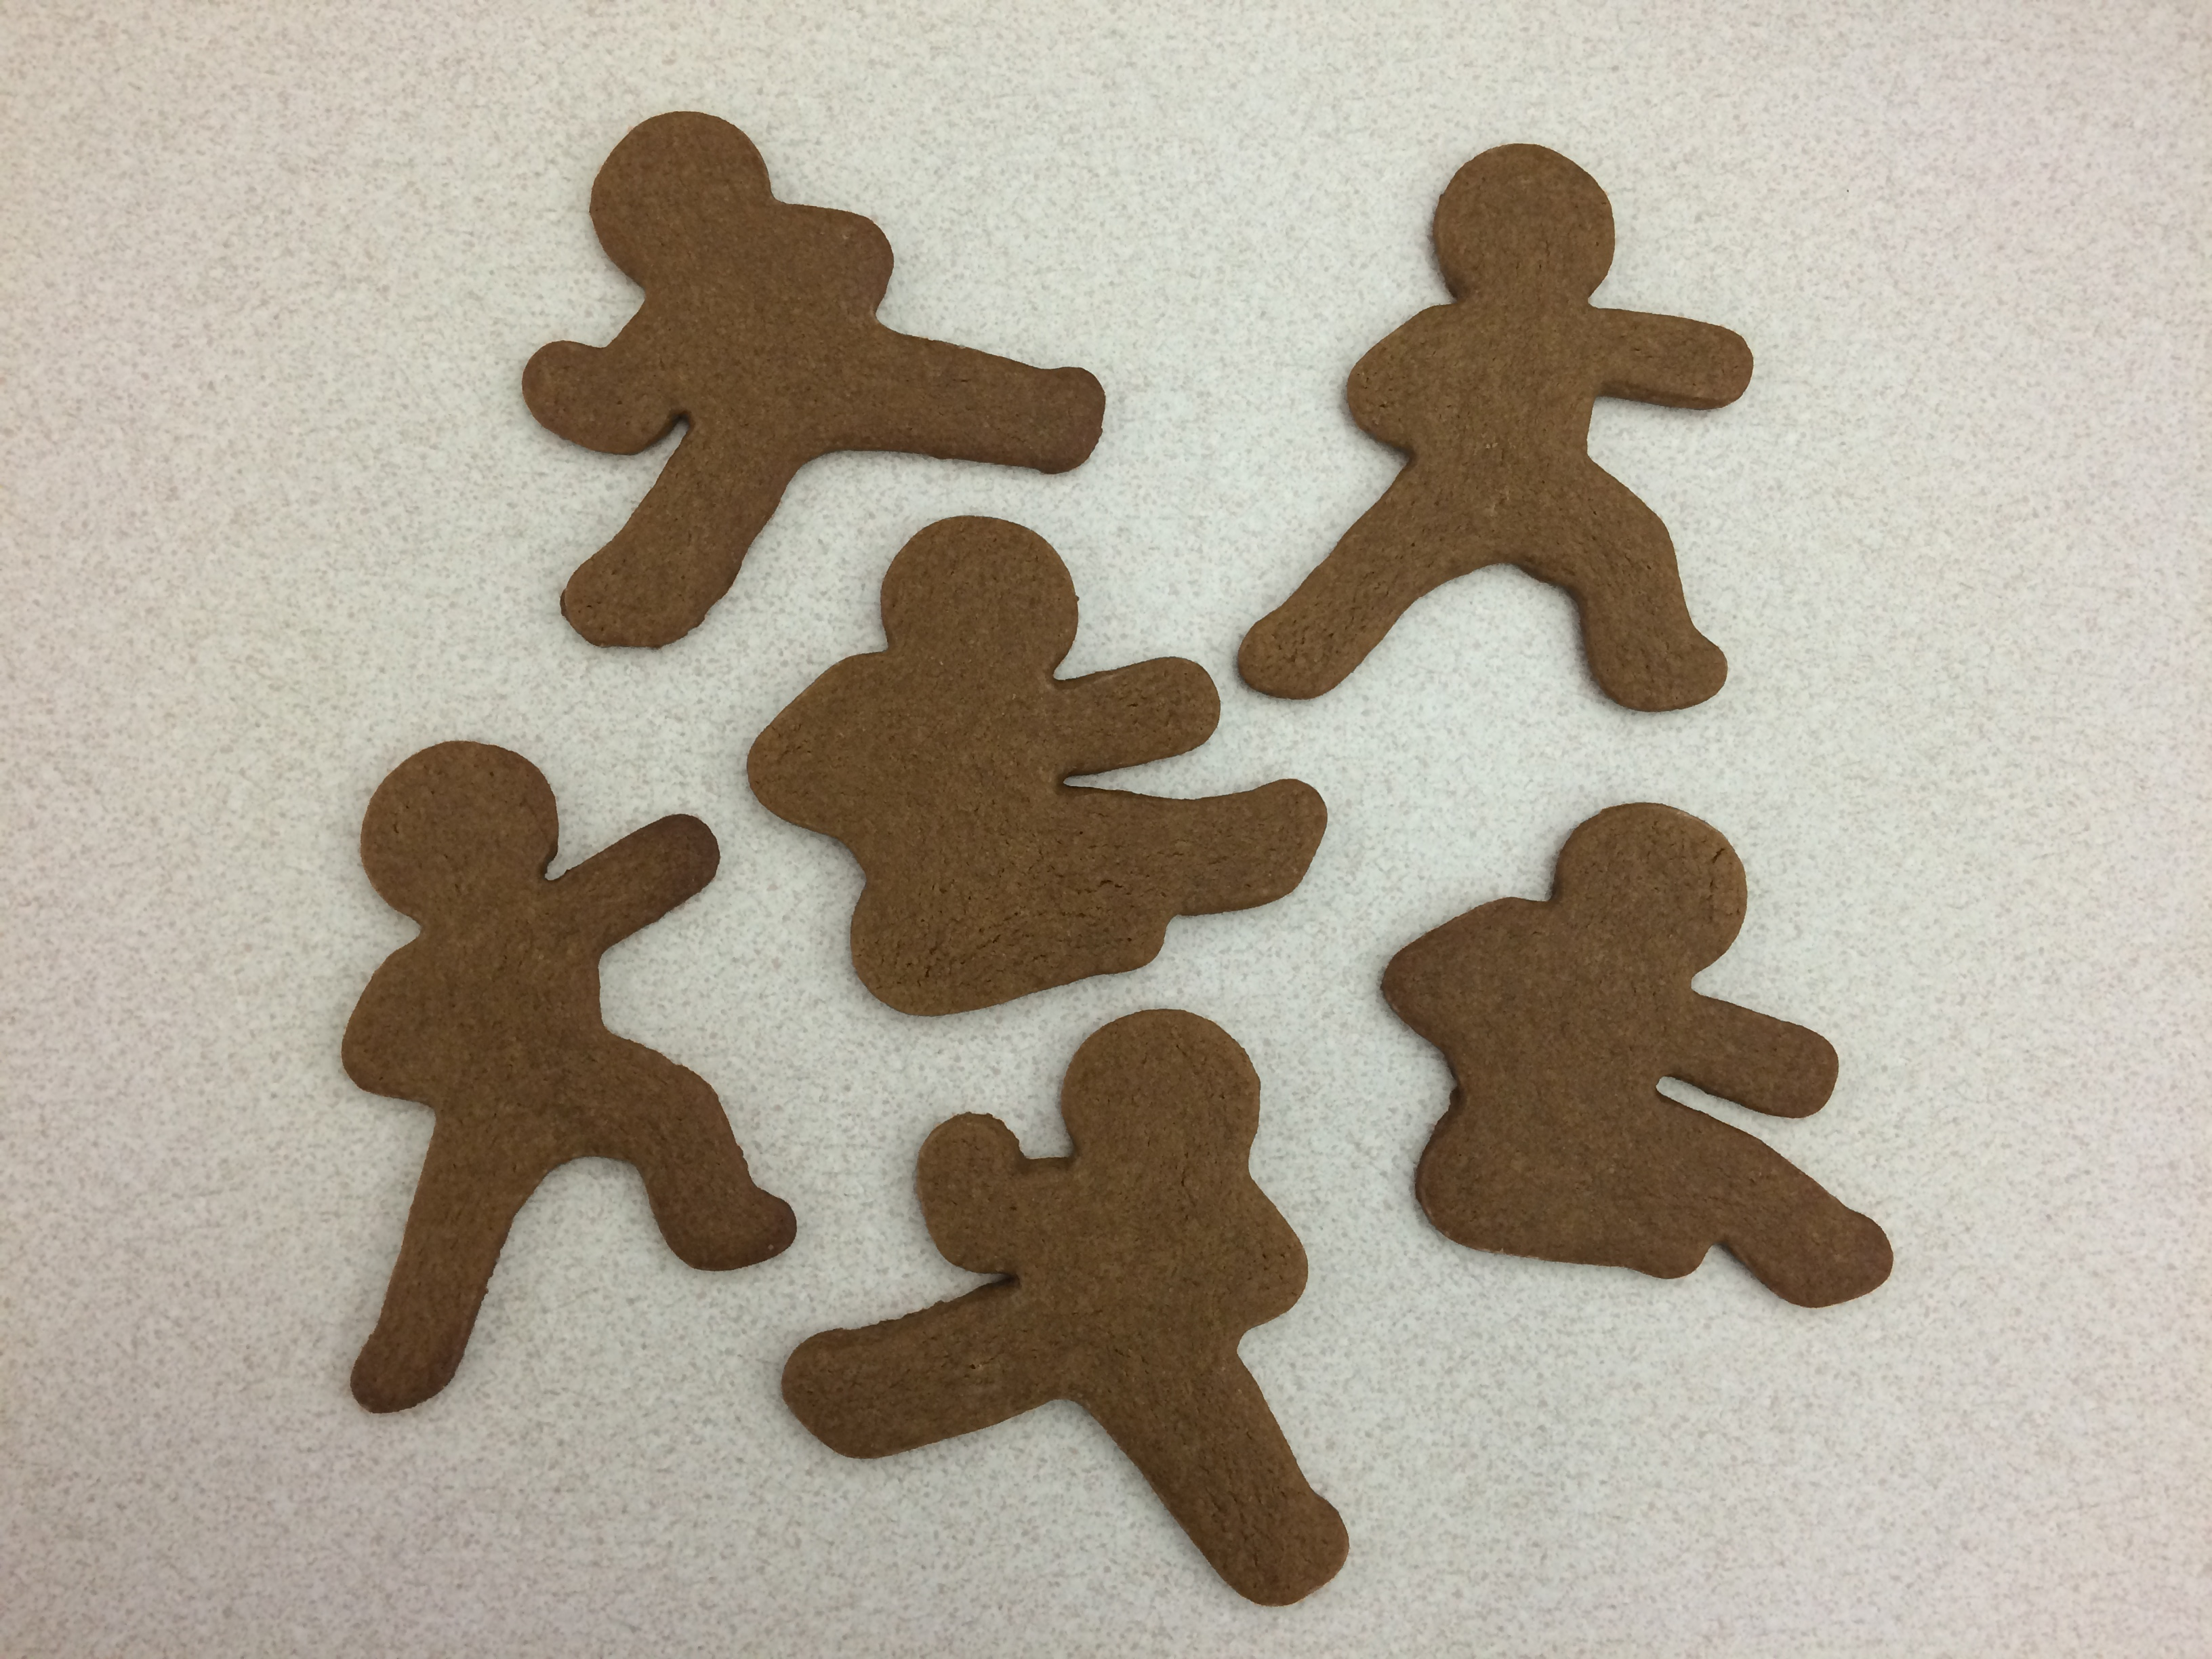 Baked Ninjabread Men Cookies